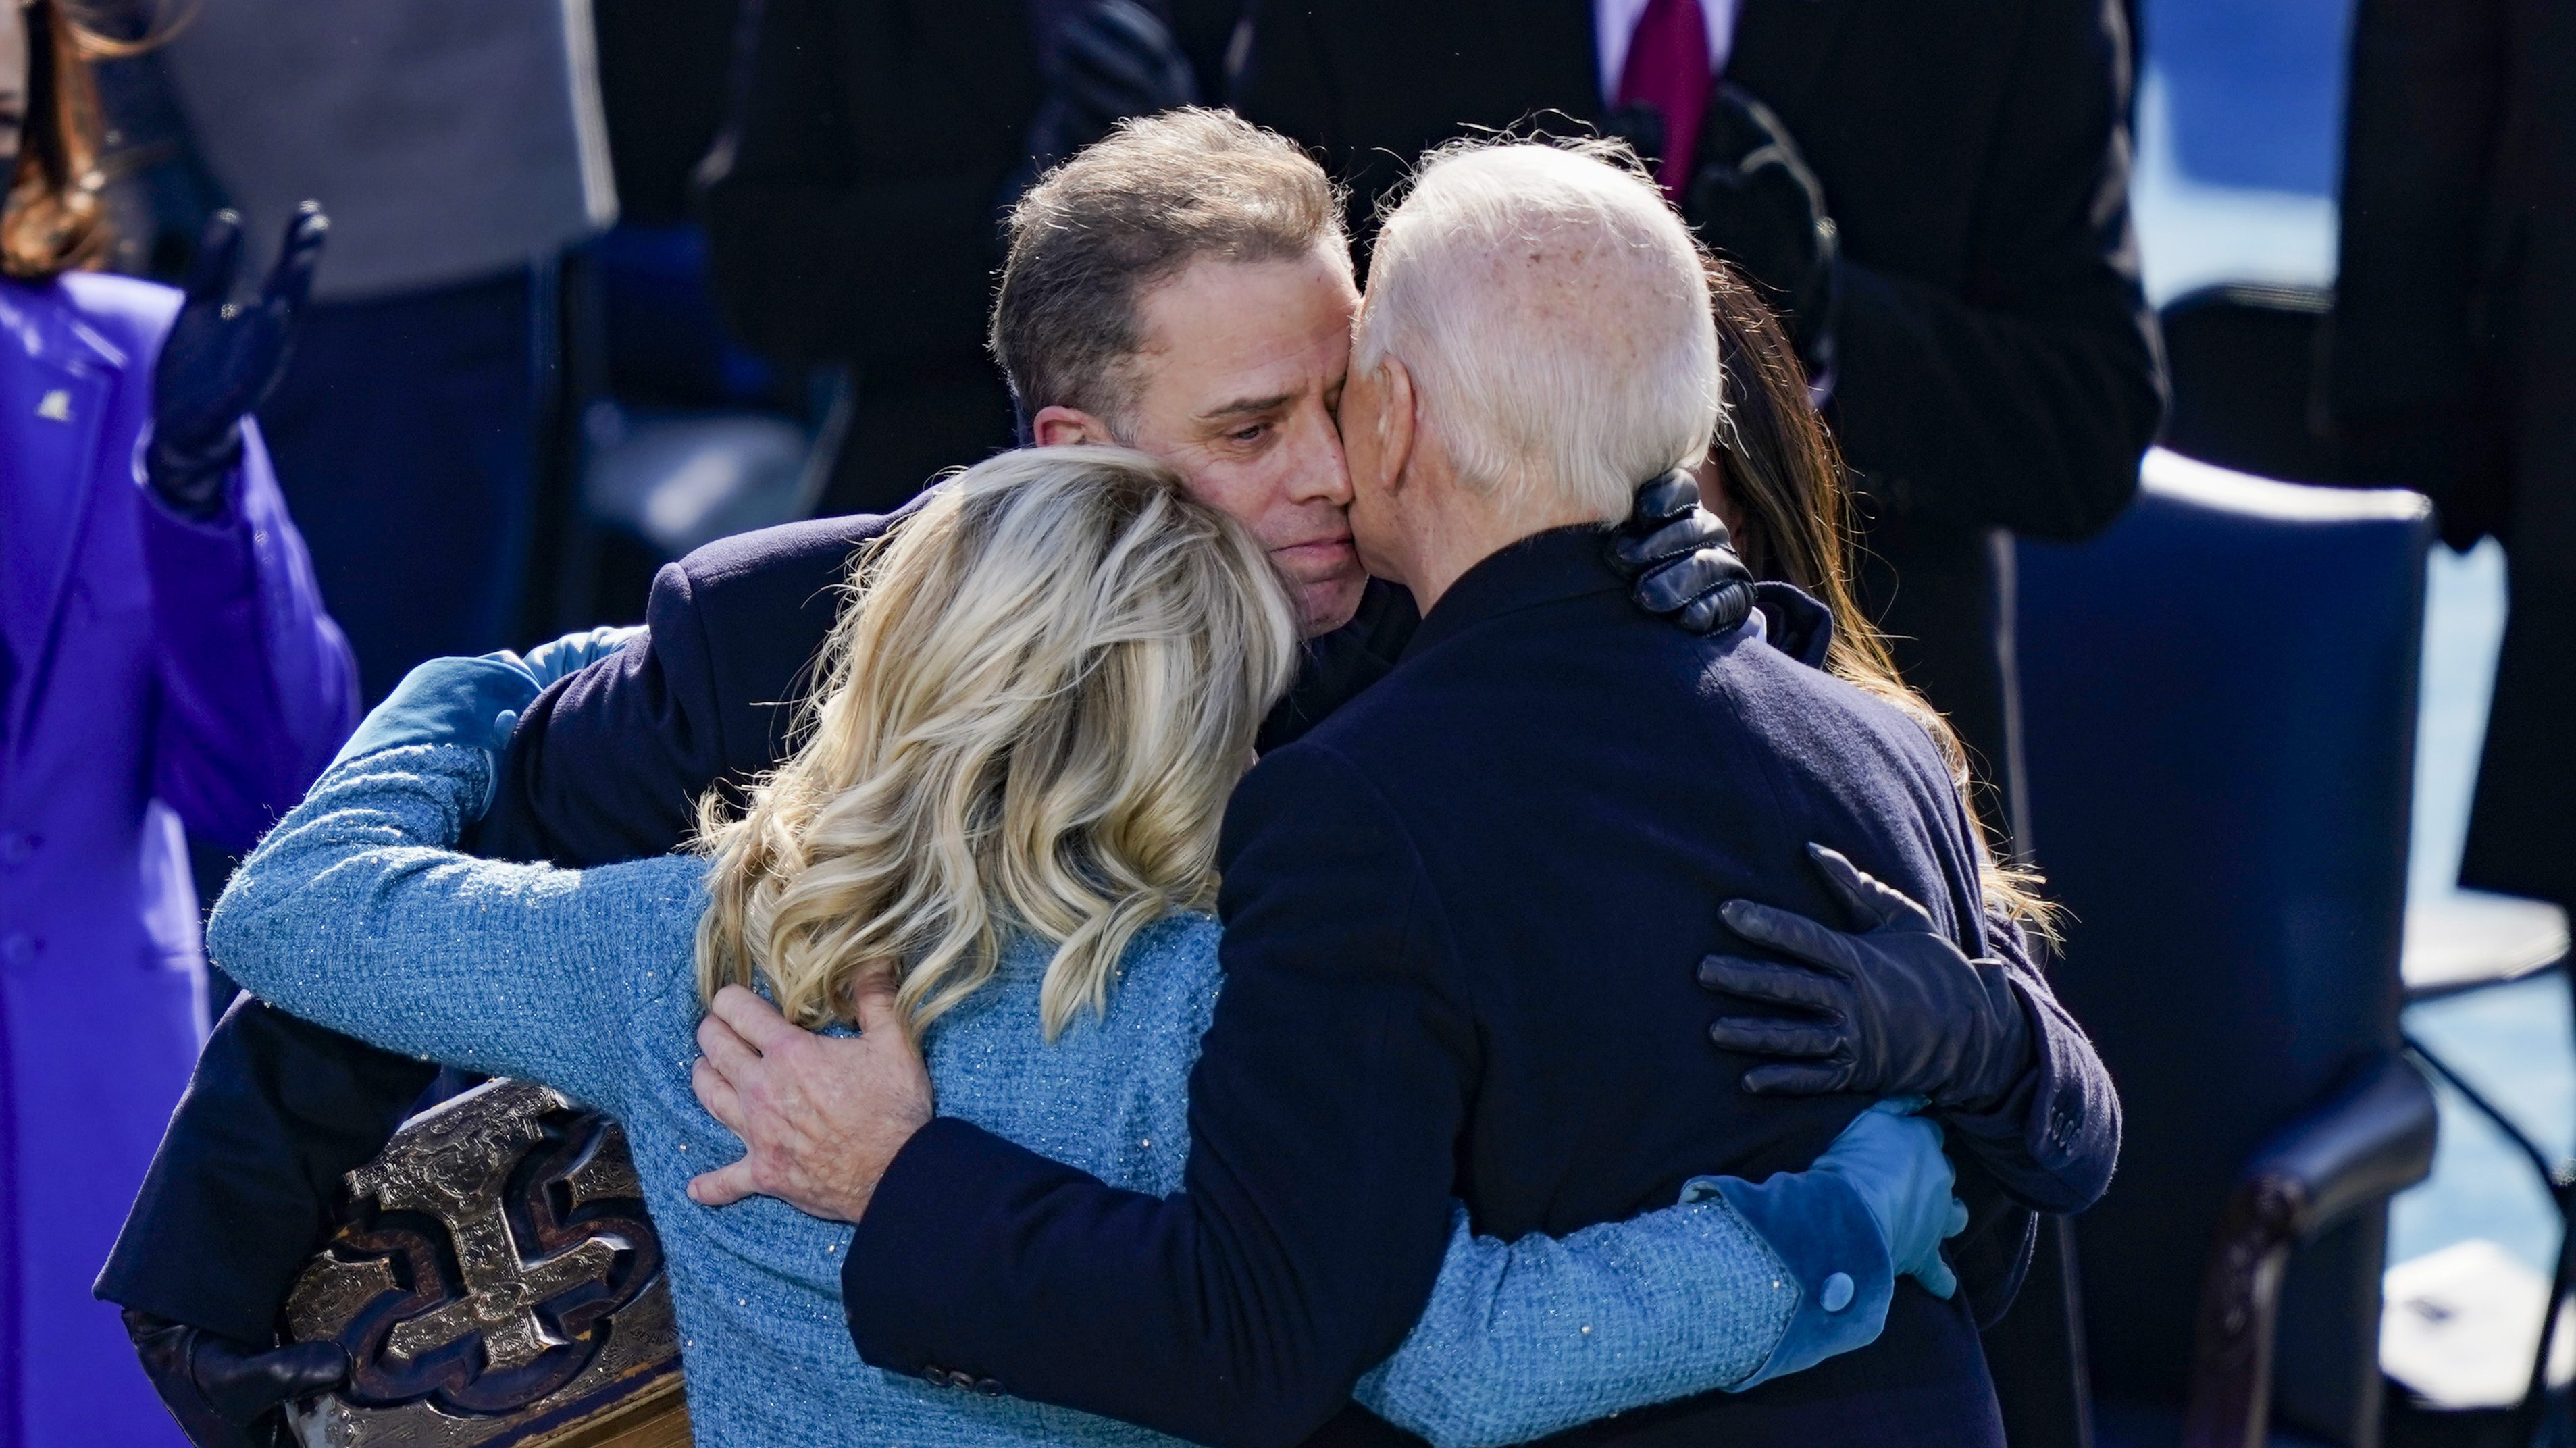 President Joe Biden embraces Dr. Jill Biden, son Hunter and daughter Ashley after being sworn in during his inauguration on the West Front of the Capitol, Jan. 20, 2021, in Washington, D.C. (Photo by Drew Angerer/Getty Images)